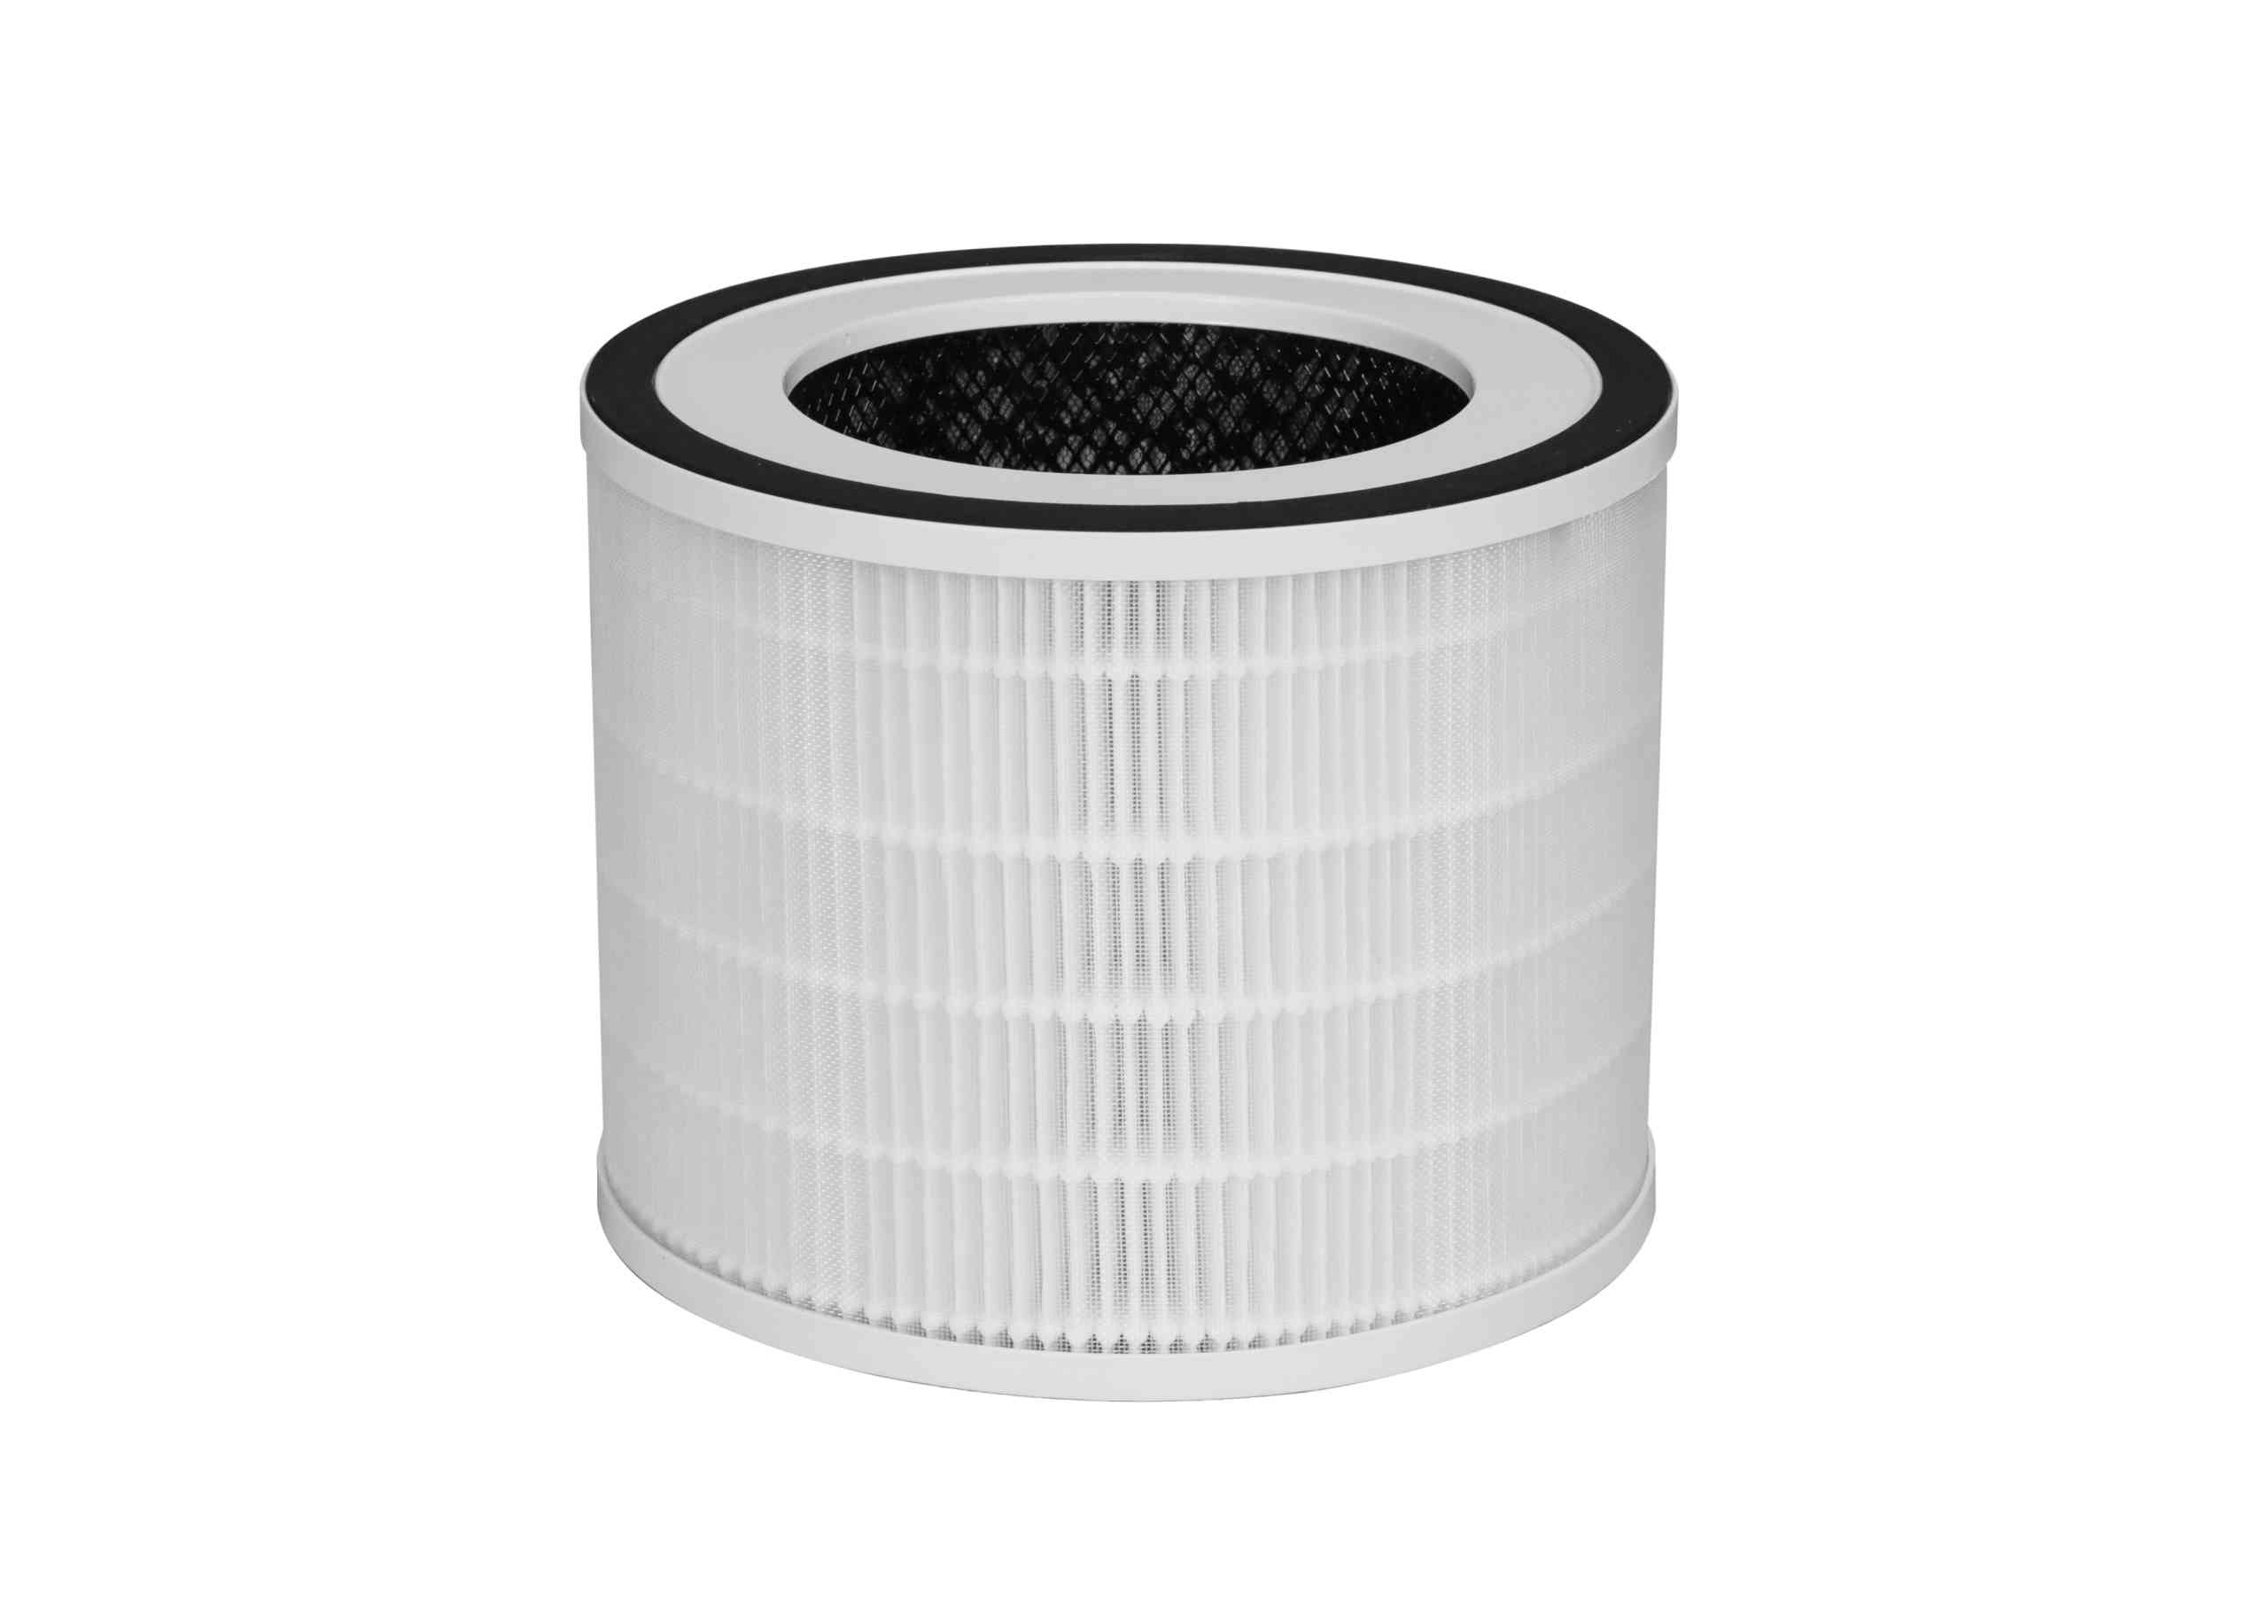 Filter for Compact air purifier